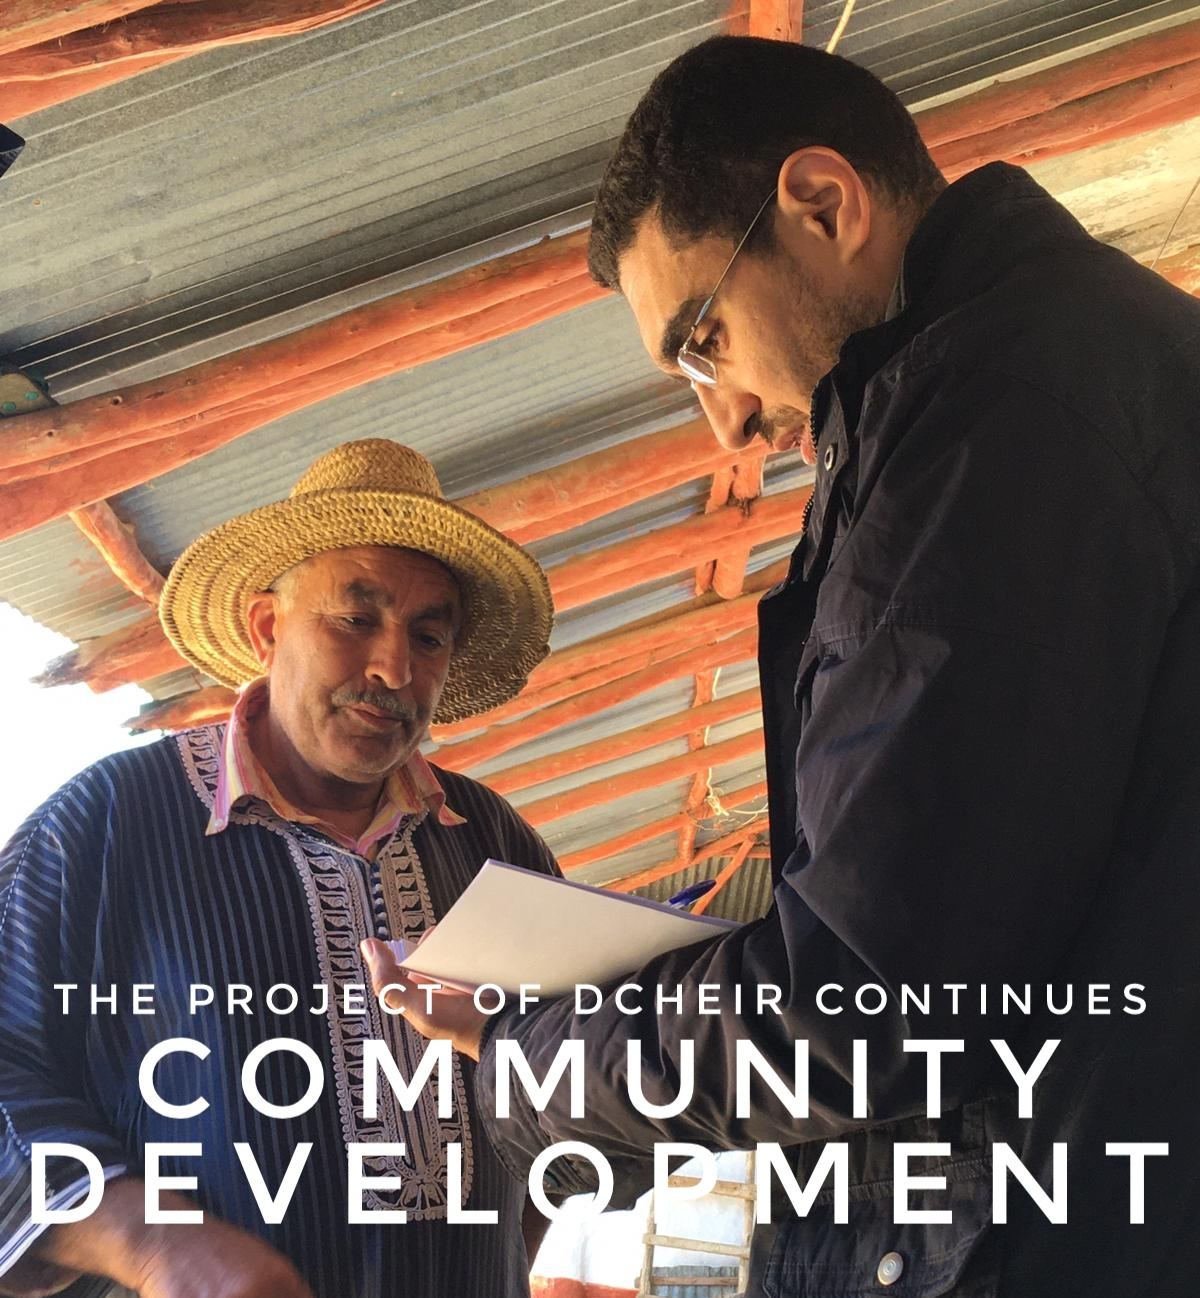 Community development – The project of Dcheir continues